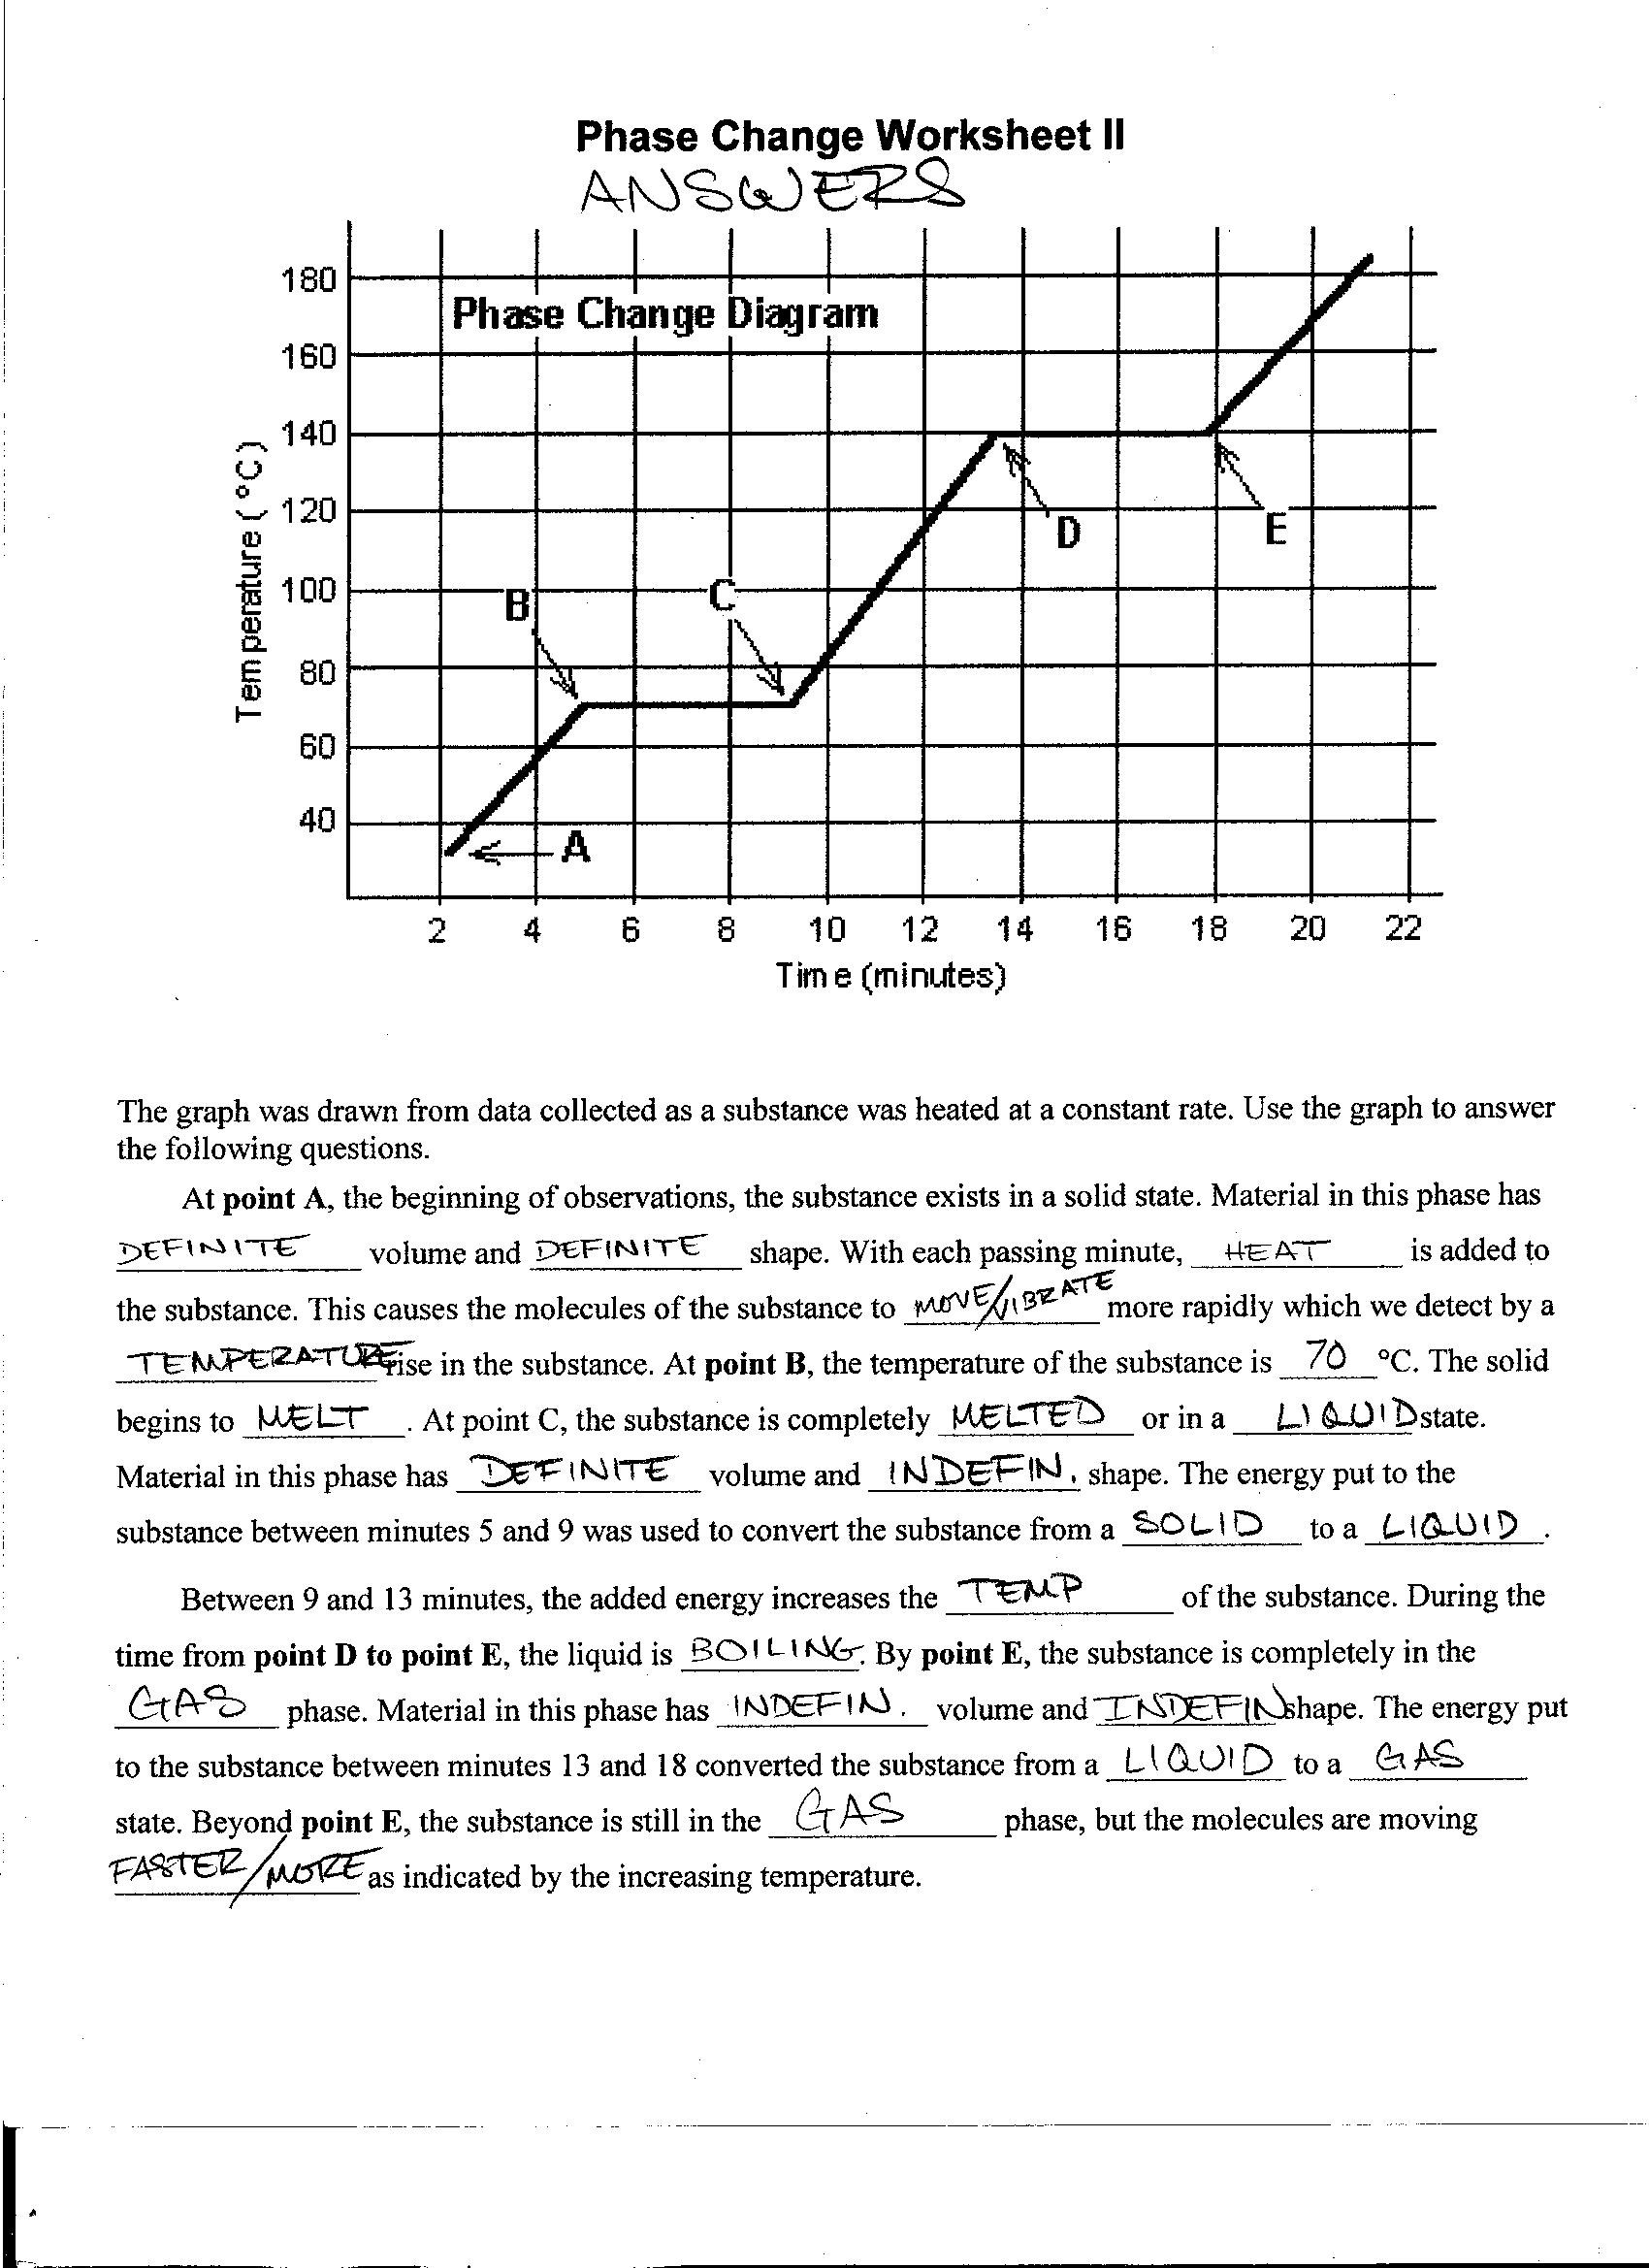 Phase Diagram Worksheet Worksheets Ratchasima Printable Worksheets And Kids Activities